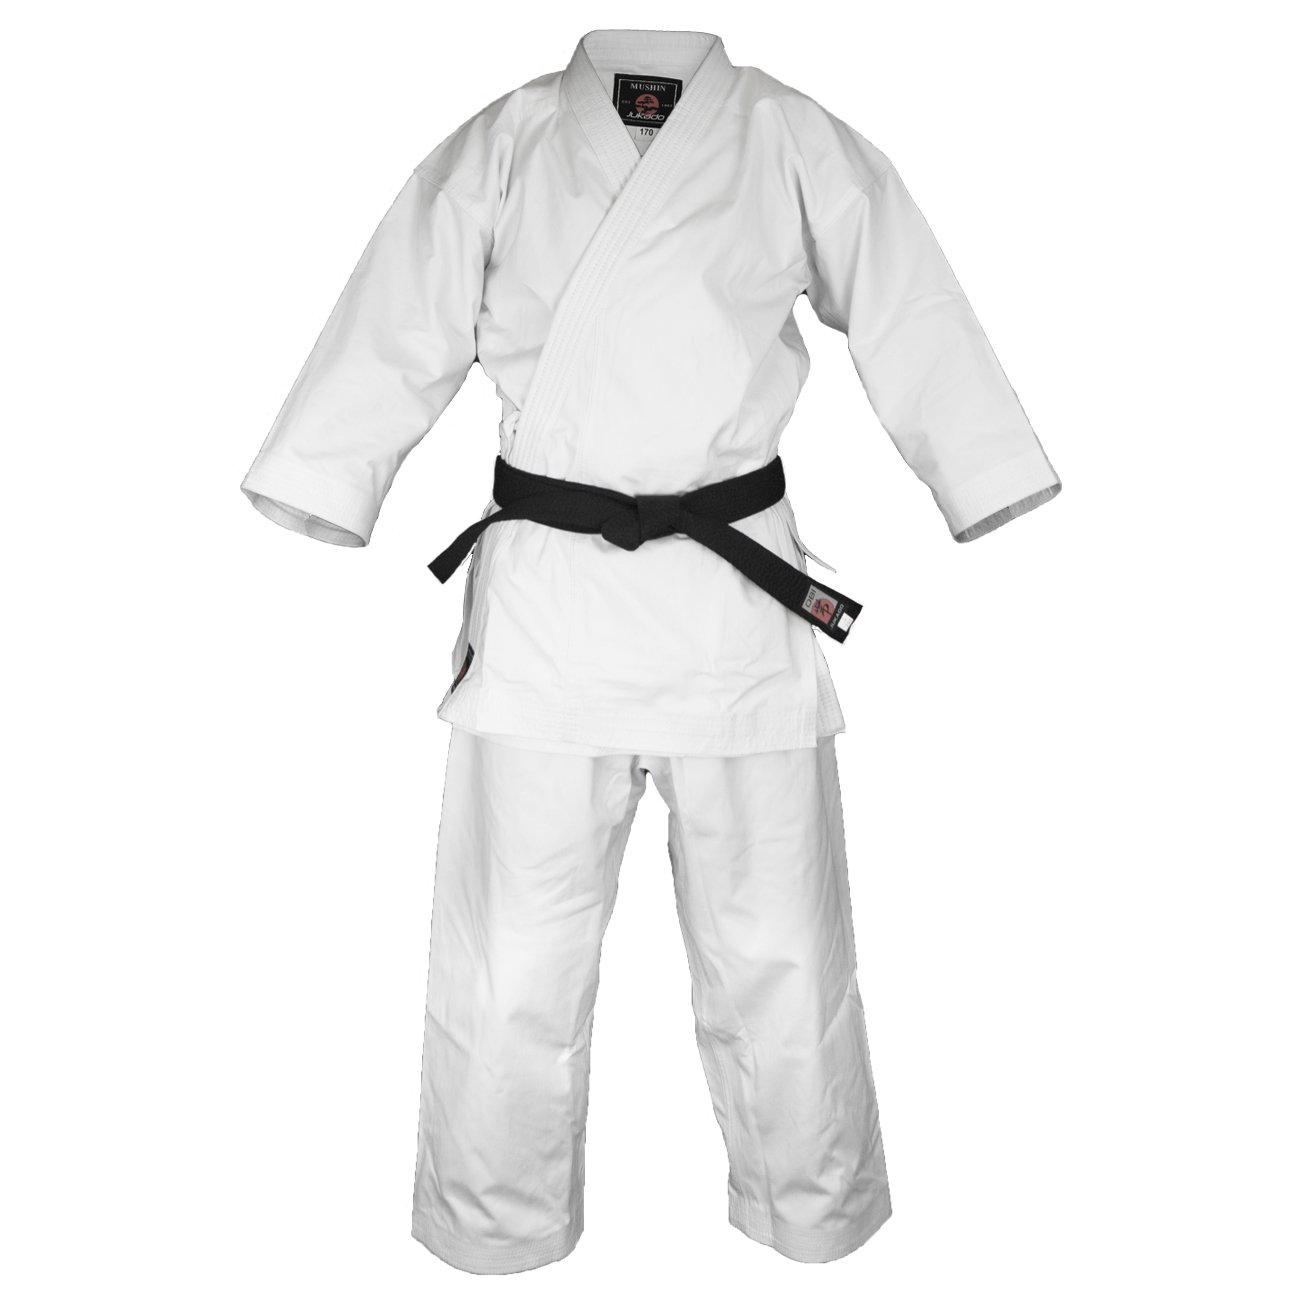 Karate Uniform JUKADO MUSHIN - 12OZ SHUREIDO Cut, KATA Uniform